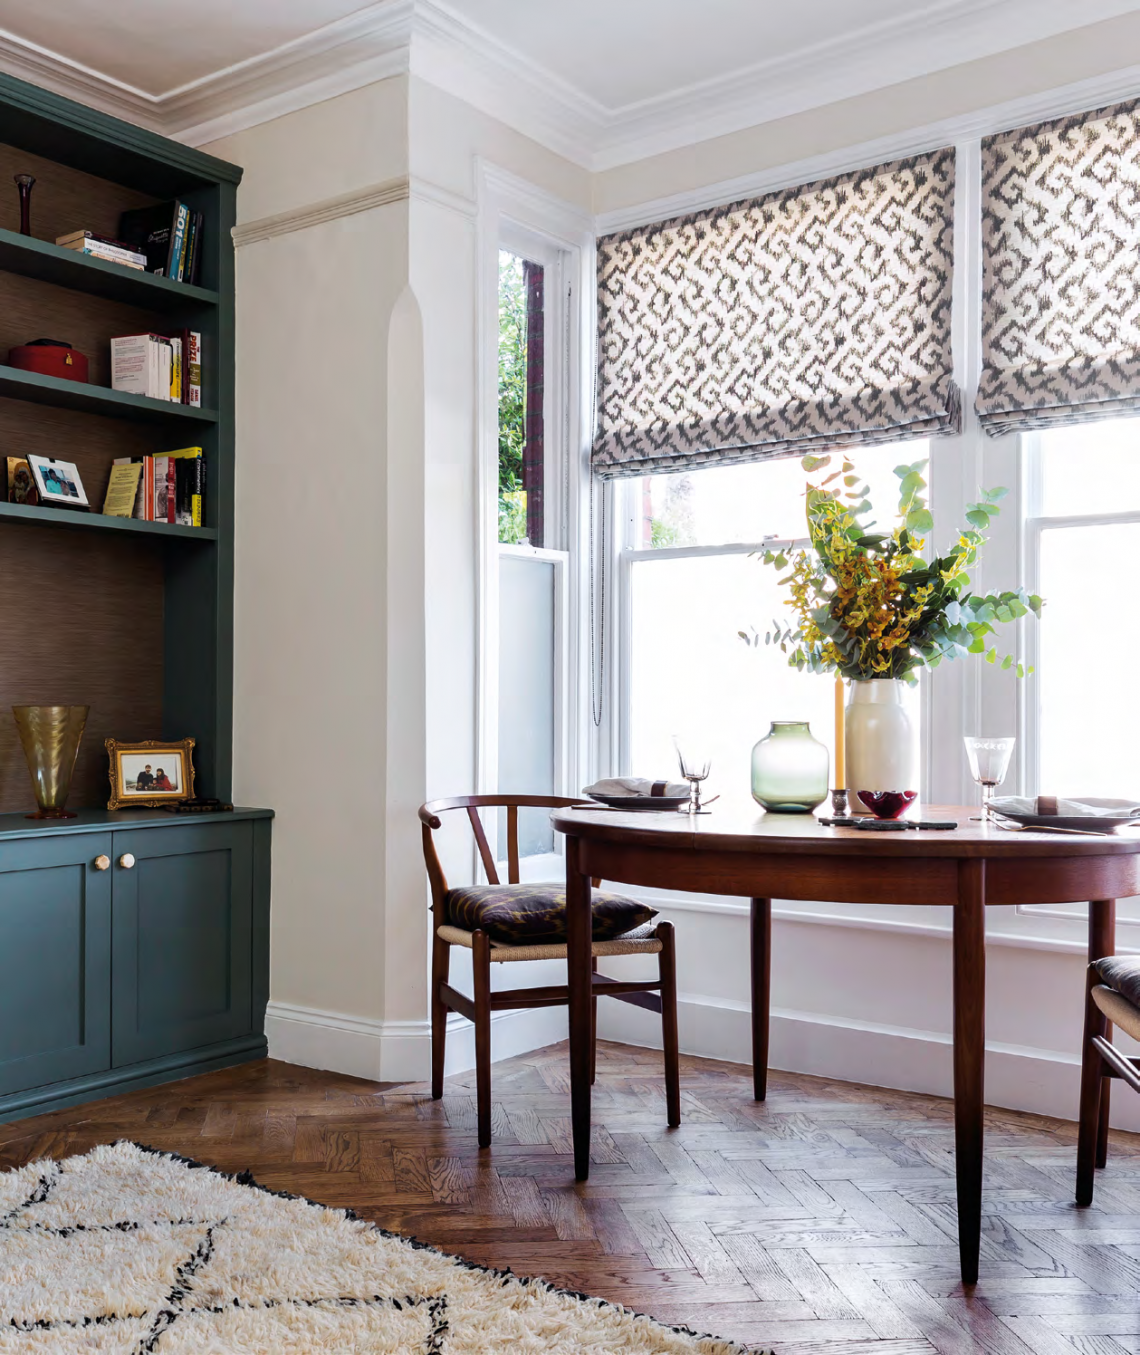 The dining area is an extension of the living room. The Askha blind fabric by Jim Thompson picks up on the Farrow & Ball Green Smoke paint used on the cabinets.